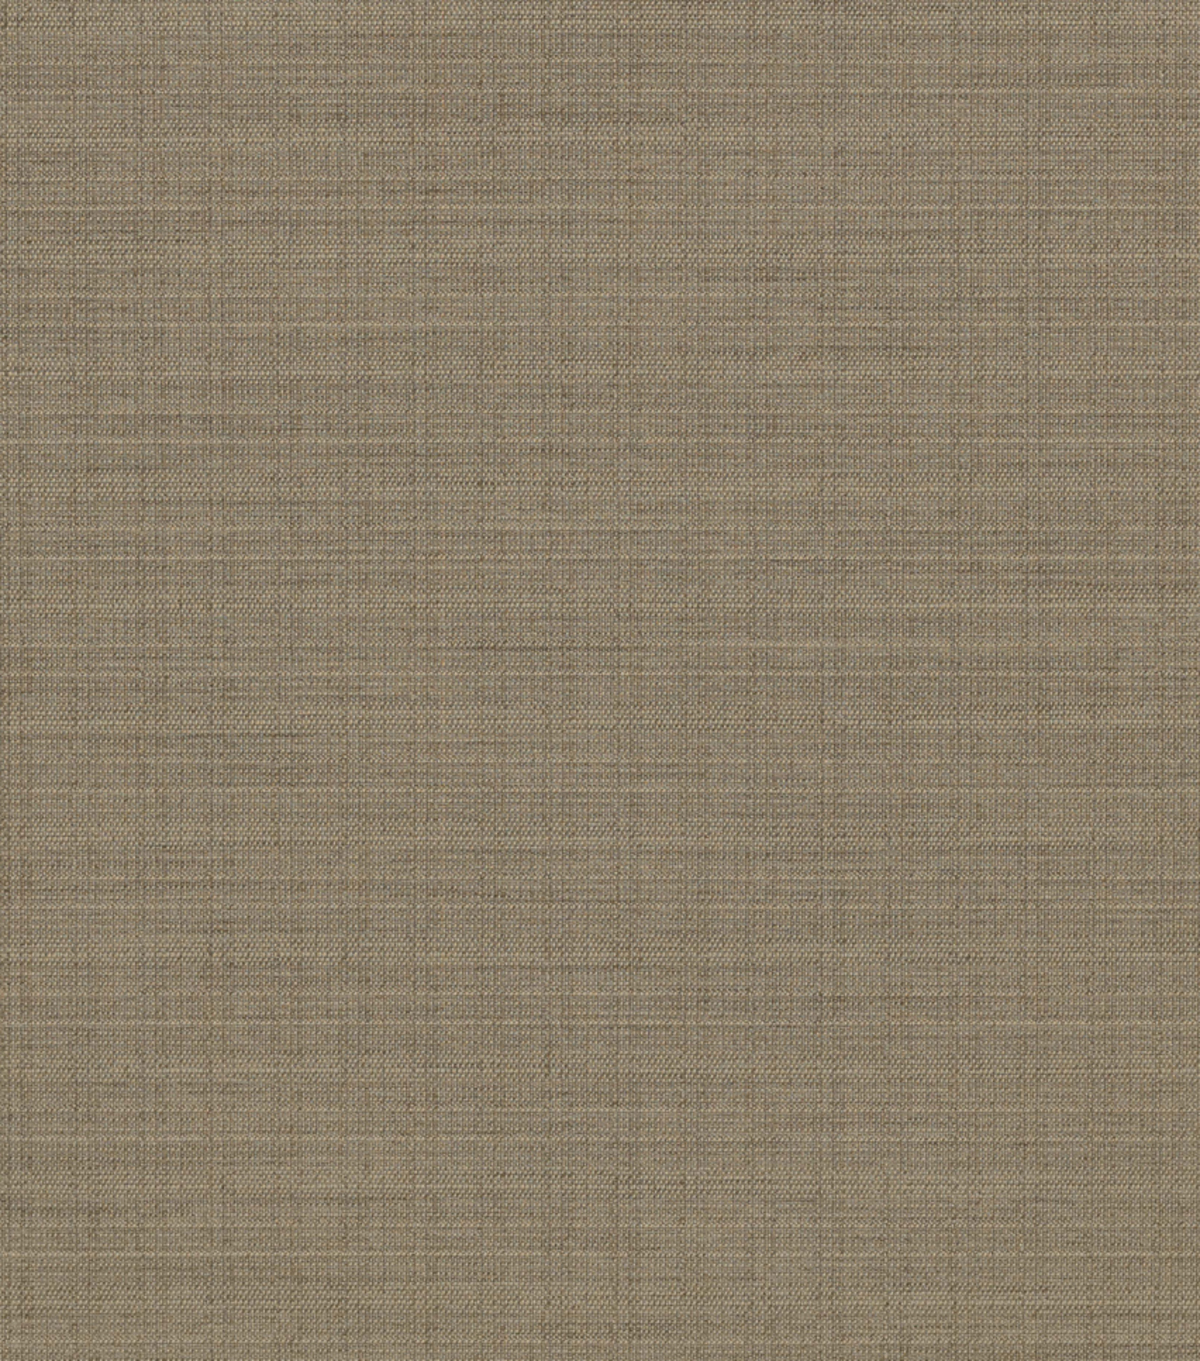 Home Decor 8\u0022x8\u0022 Fabric Swatch-Boca Grout